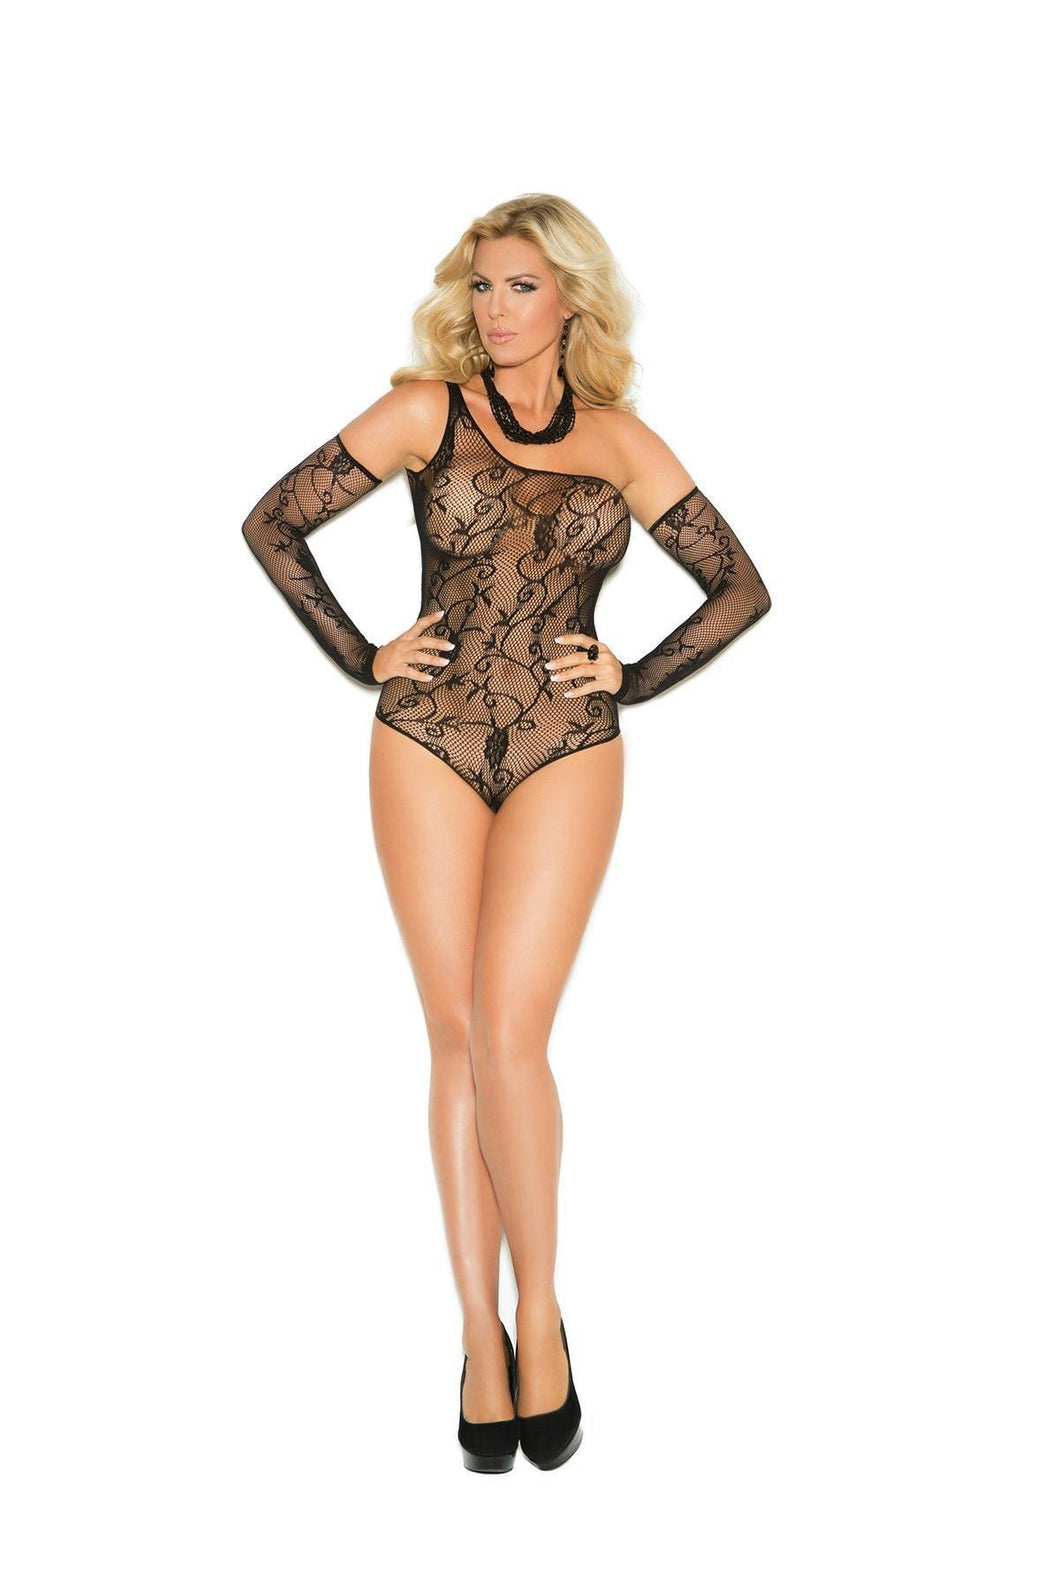 Elegant Moments Floral Fishnet Teddy W/Gloves-Teddies-Elegant Moments-BLACK-Q/S-Unspoken Fashion